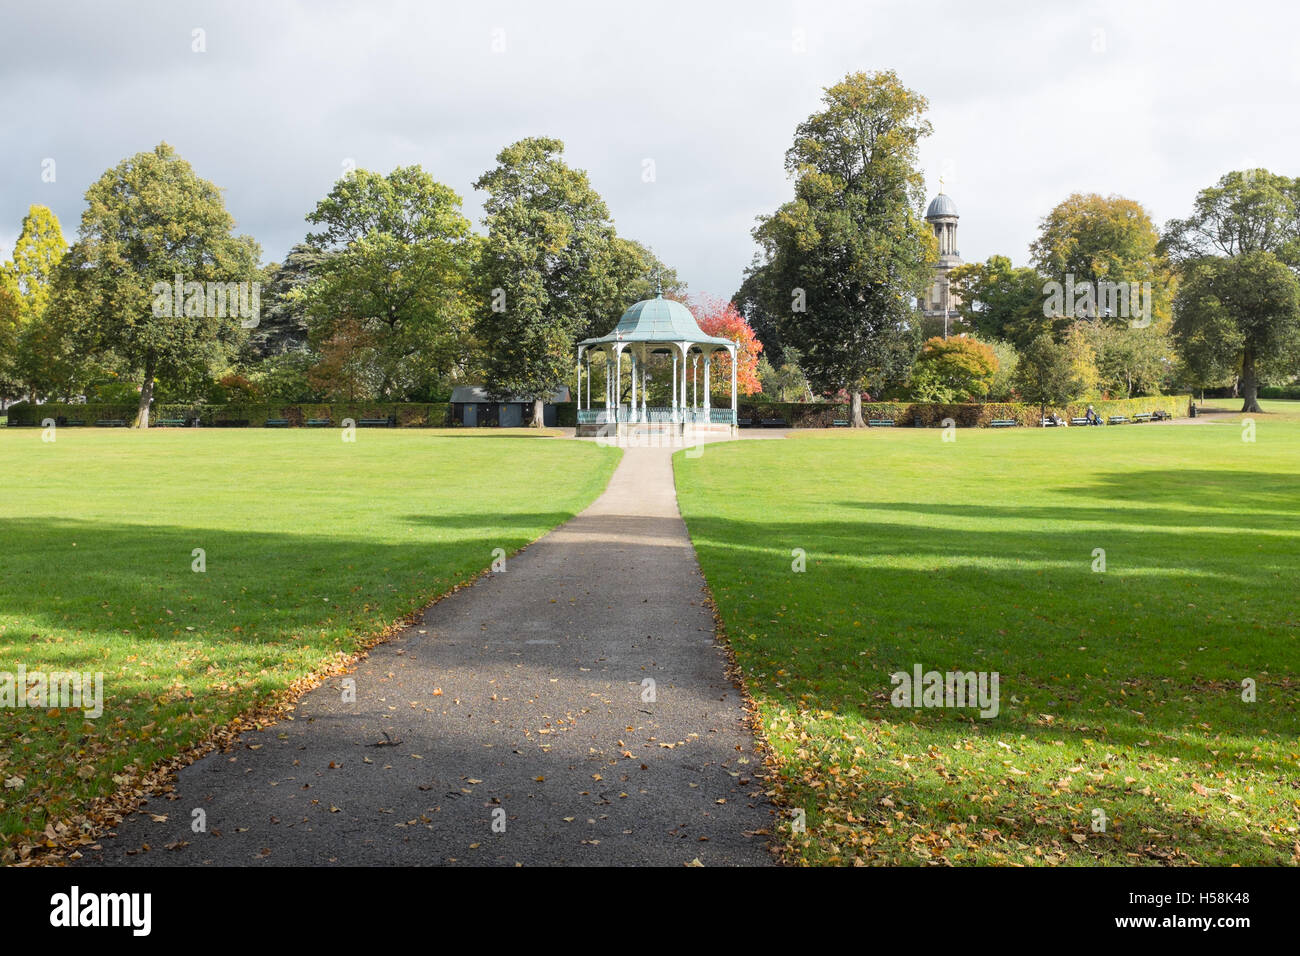 The bandstand in Shrewsbury's Quarry Park with the Dingle in the background - Stock Image